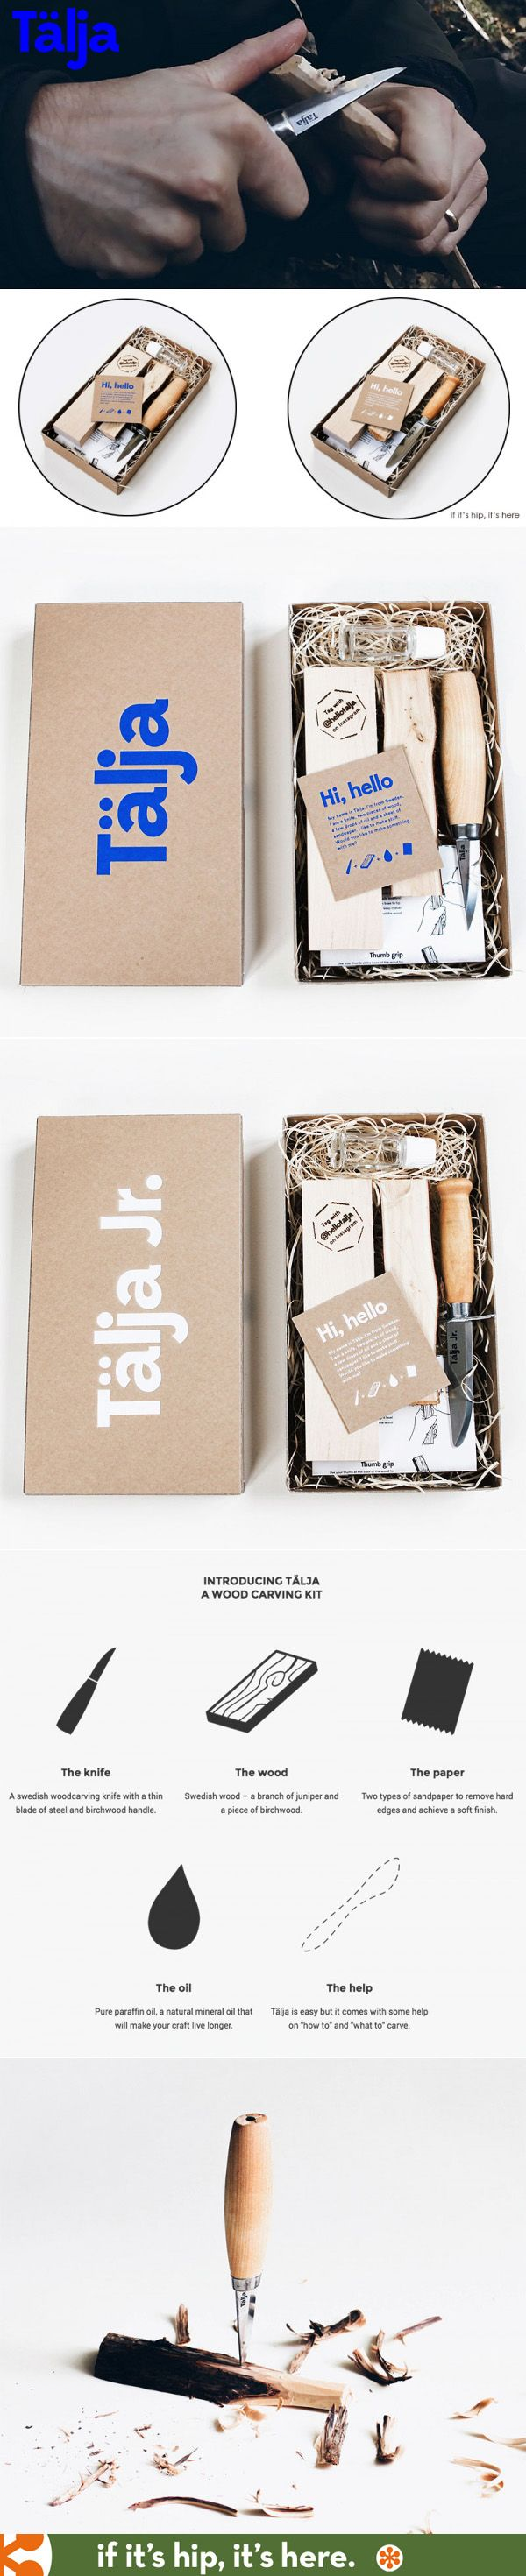 Talja Carving kits show how a few simple items, when packaged together in a well-designed manner, become a cool gift. PD